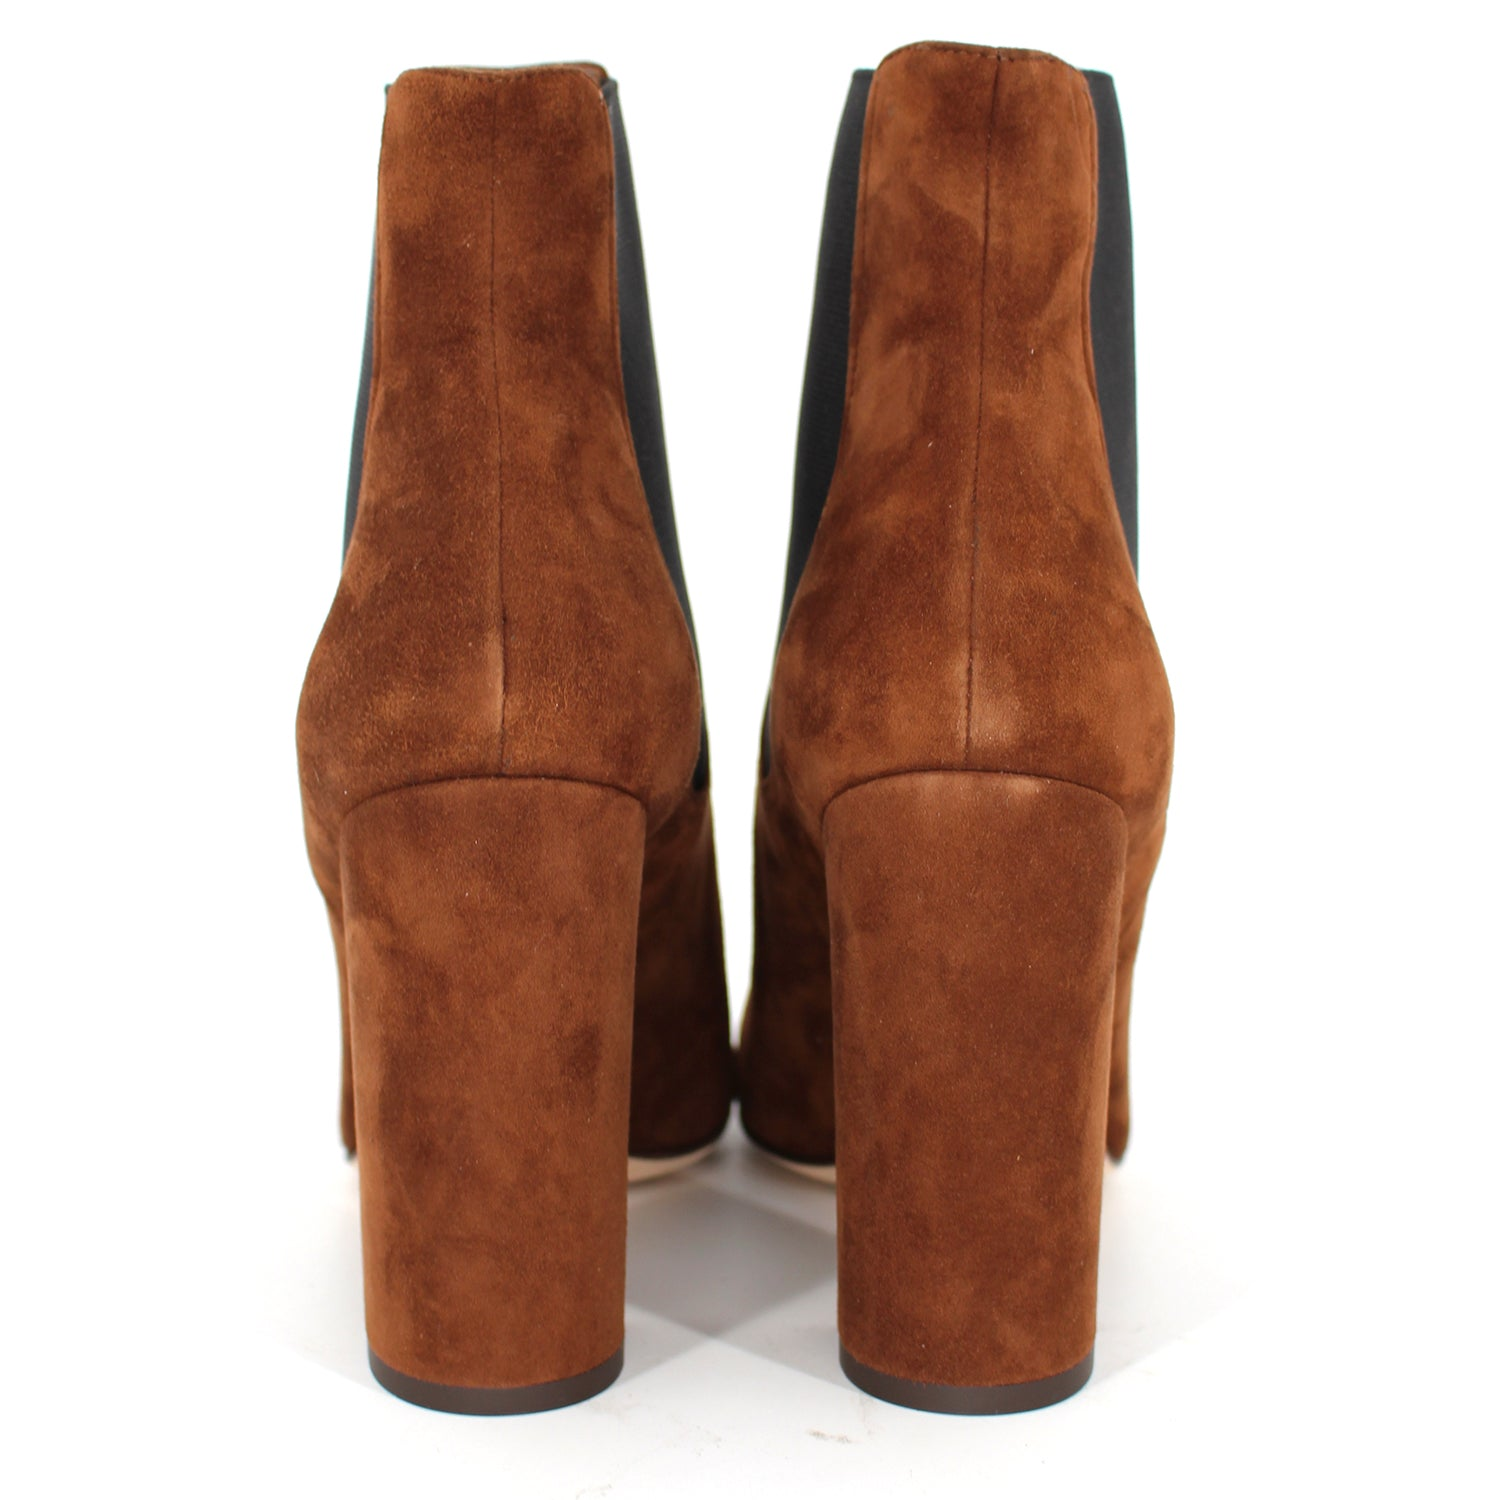 Dolce & Gabbana Vally Booties